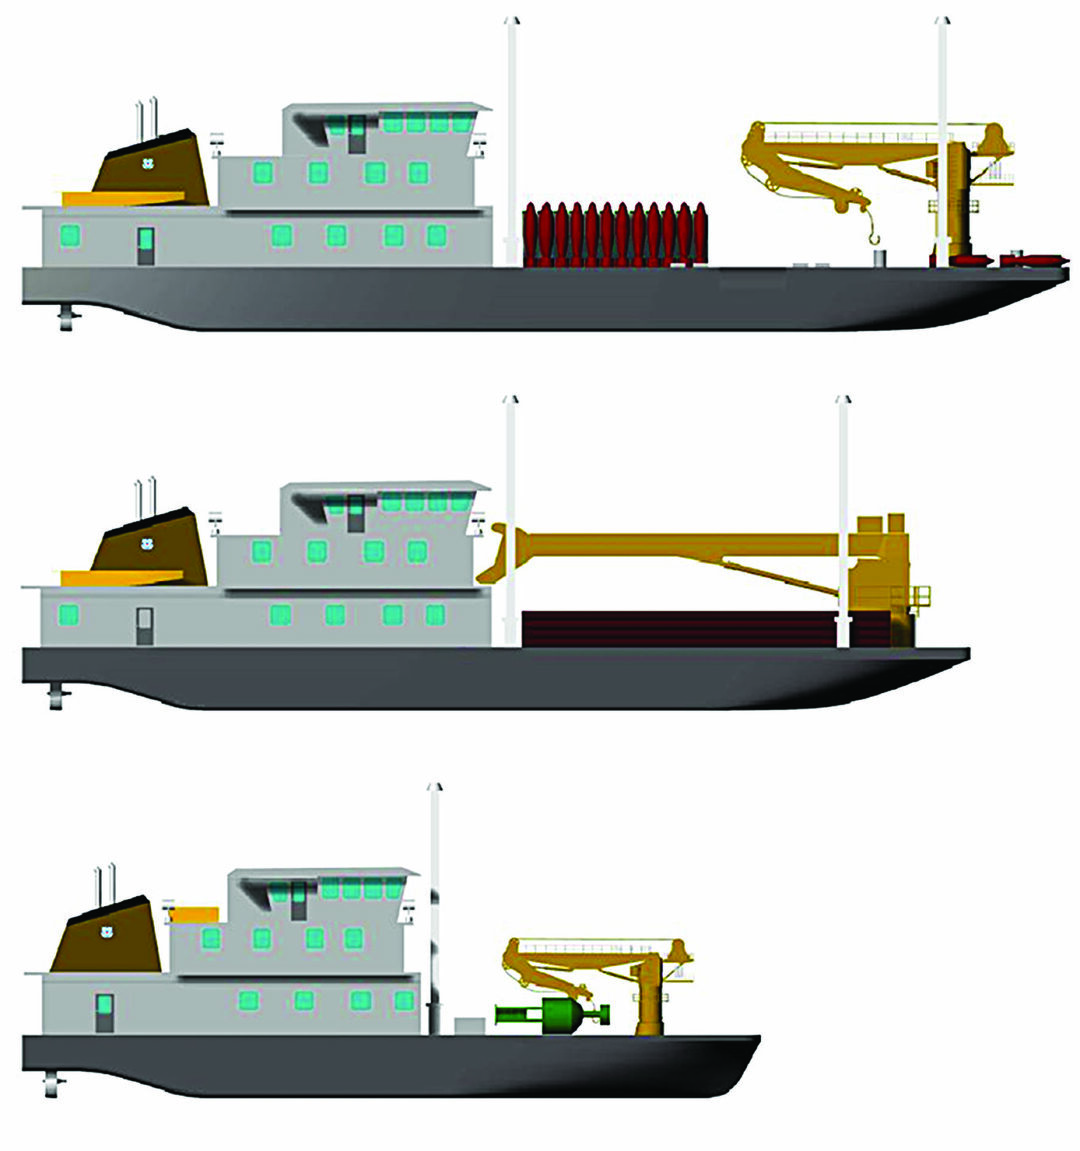 Notional Coast Guard designs for, from top to bottom, river buoy tender, inland construction tender, and inland buoy tender variants of the Waterways Commerce Cutter. (U.S. Coast Guard image)